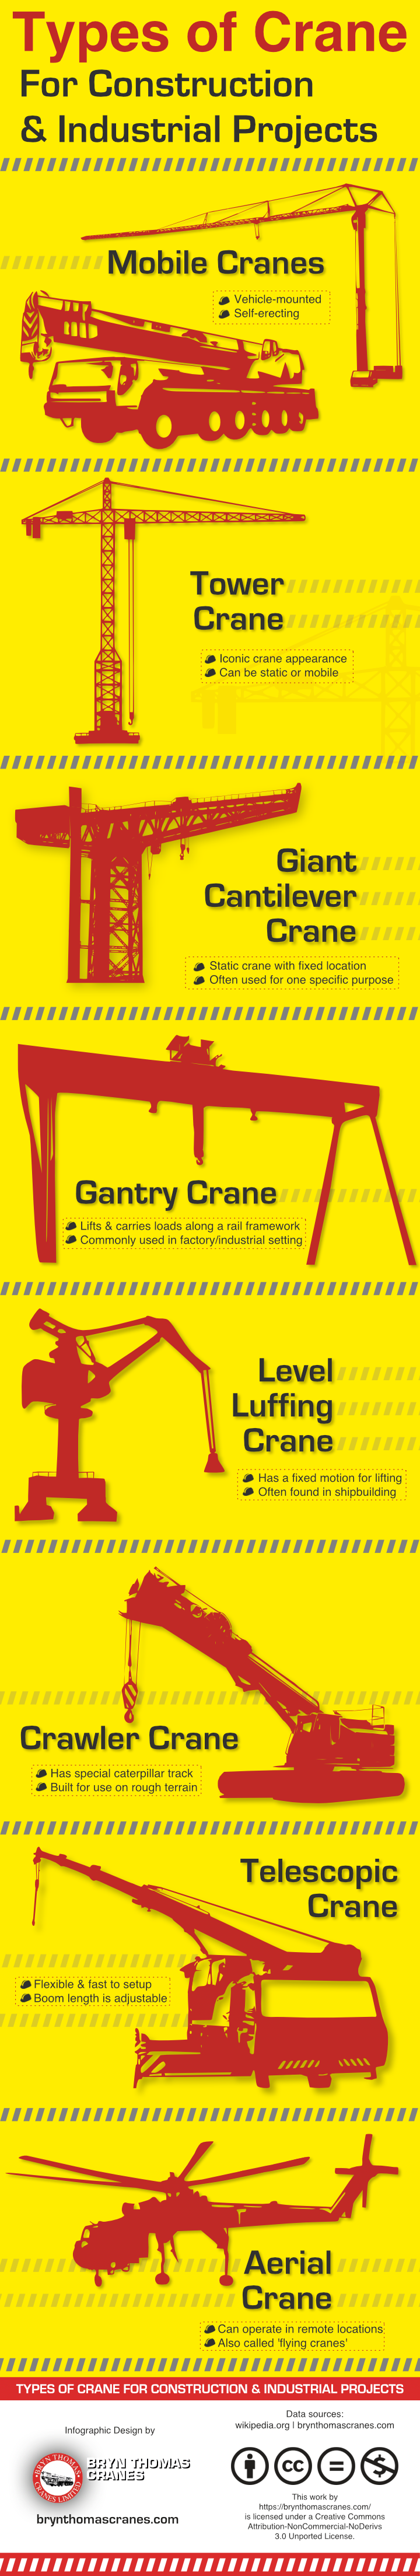 Types Of Crane For Construction & Industrial Projects Infographic